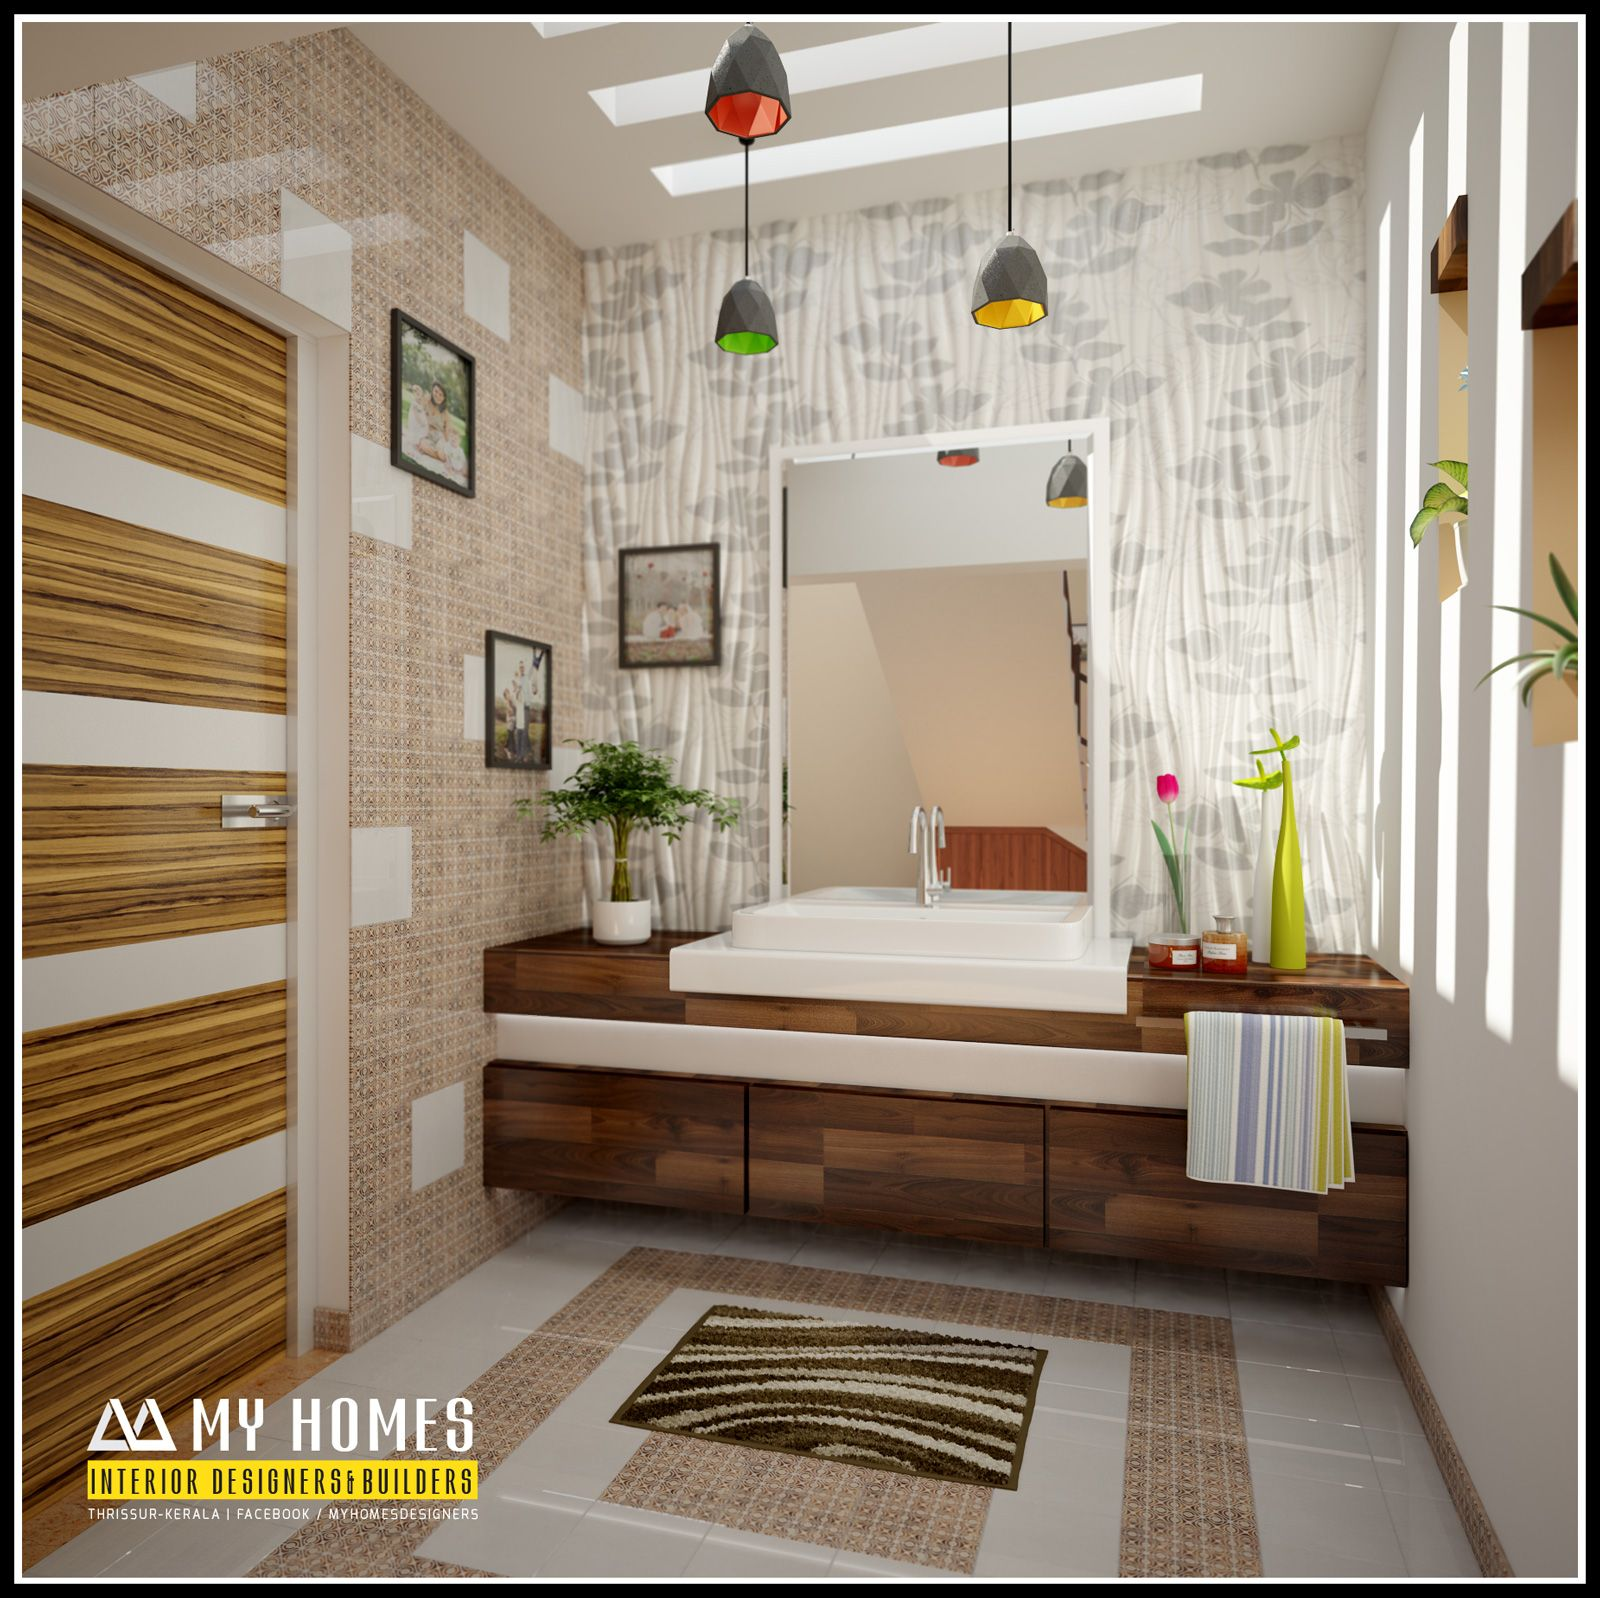 Home Internal Design: Kerala House Wash Basin Interior Designs Photos And Ideas